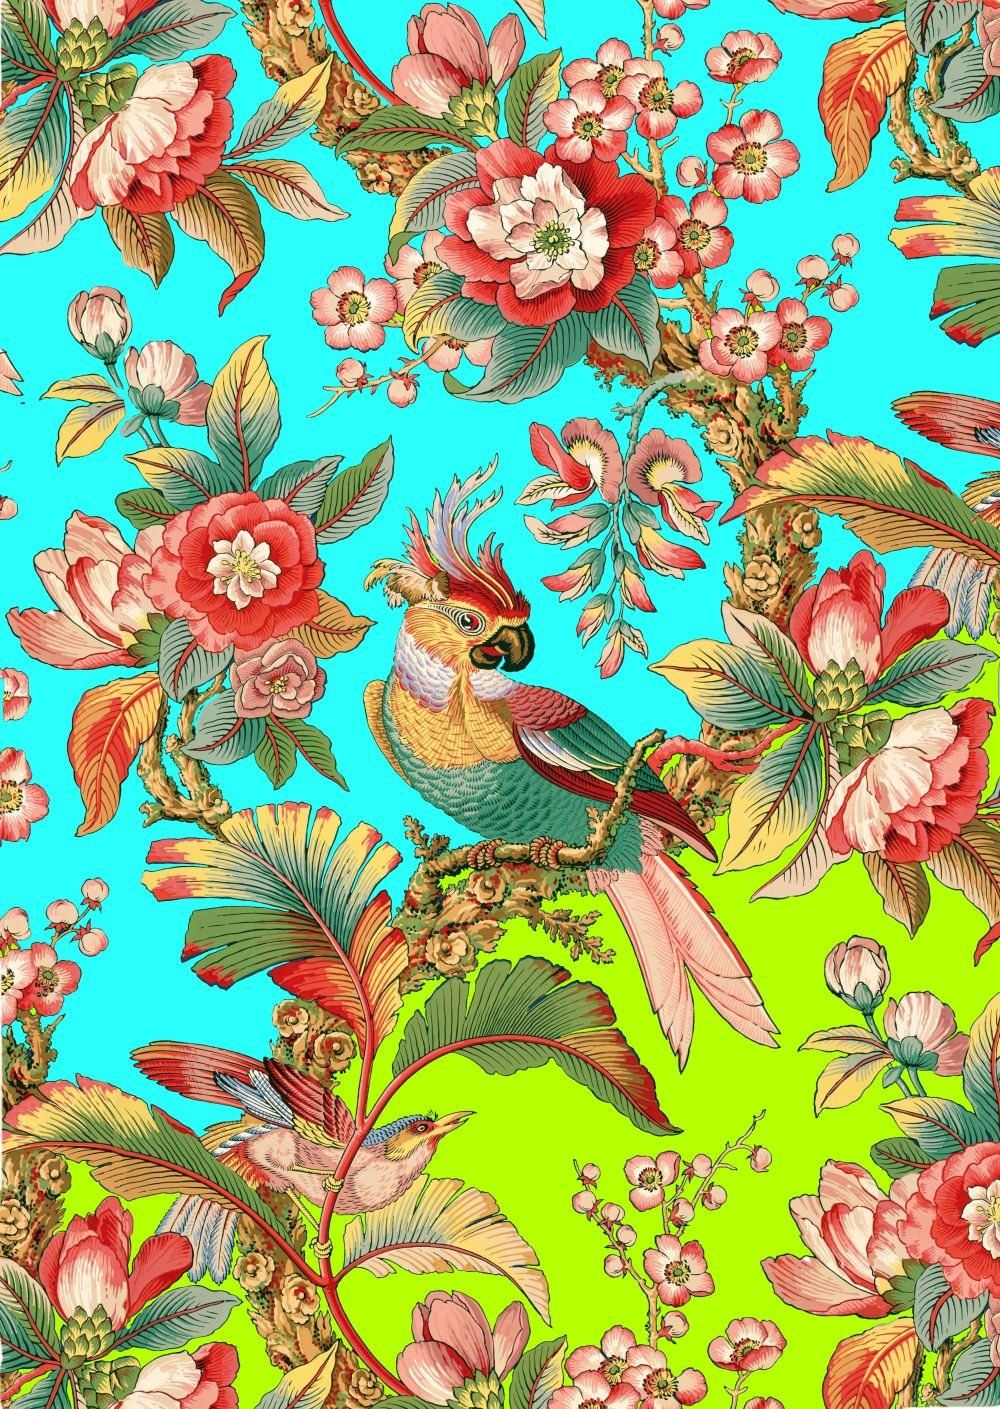 Antique French Chinoiserie Tropical Wallpapertropical Bird Etsy Chinoiserie Wallpaper Tropical Flowers Illustration French Illustration